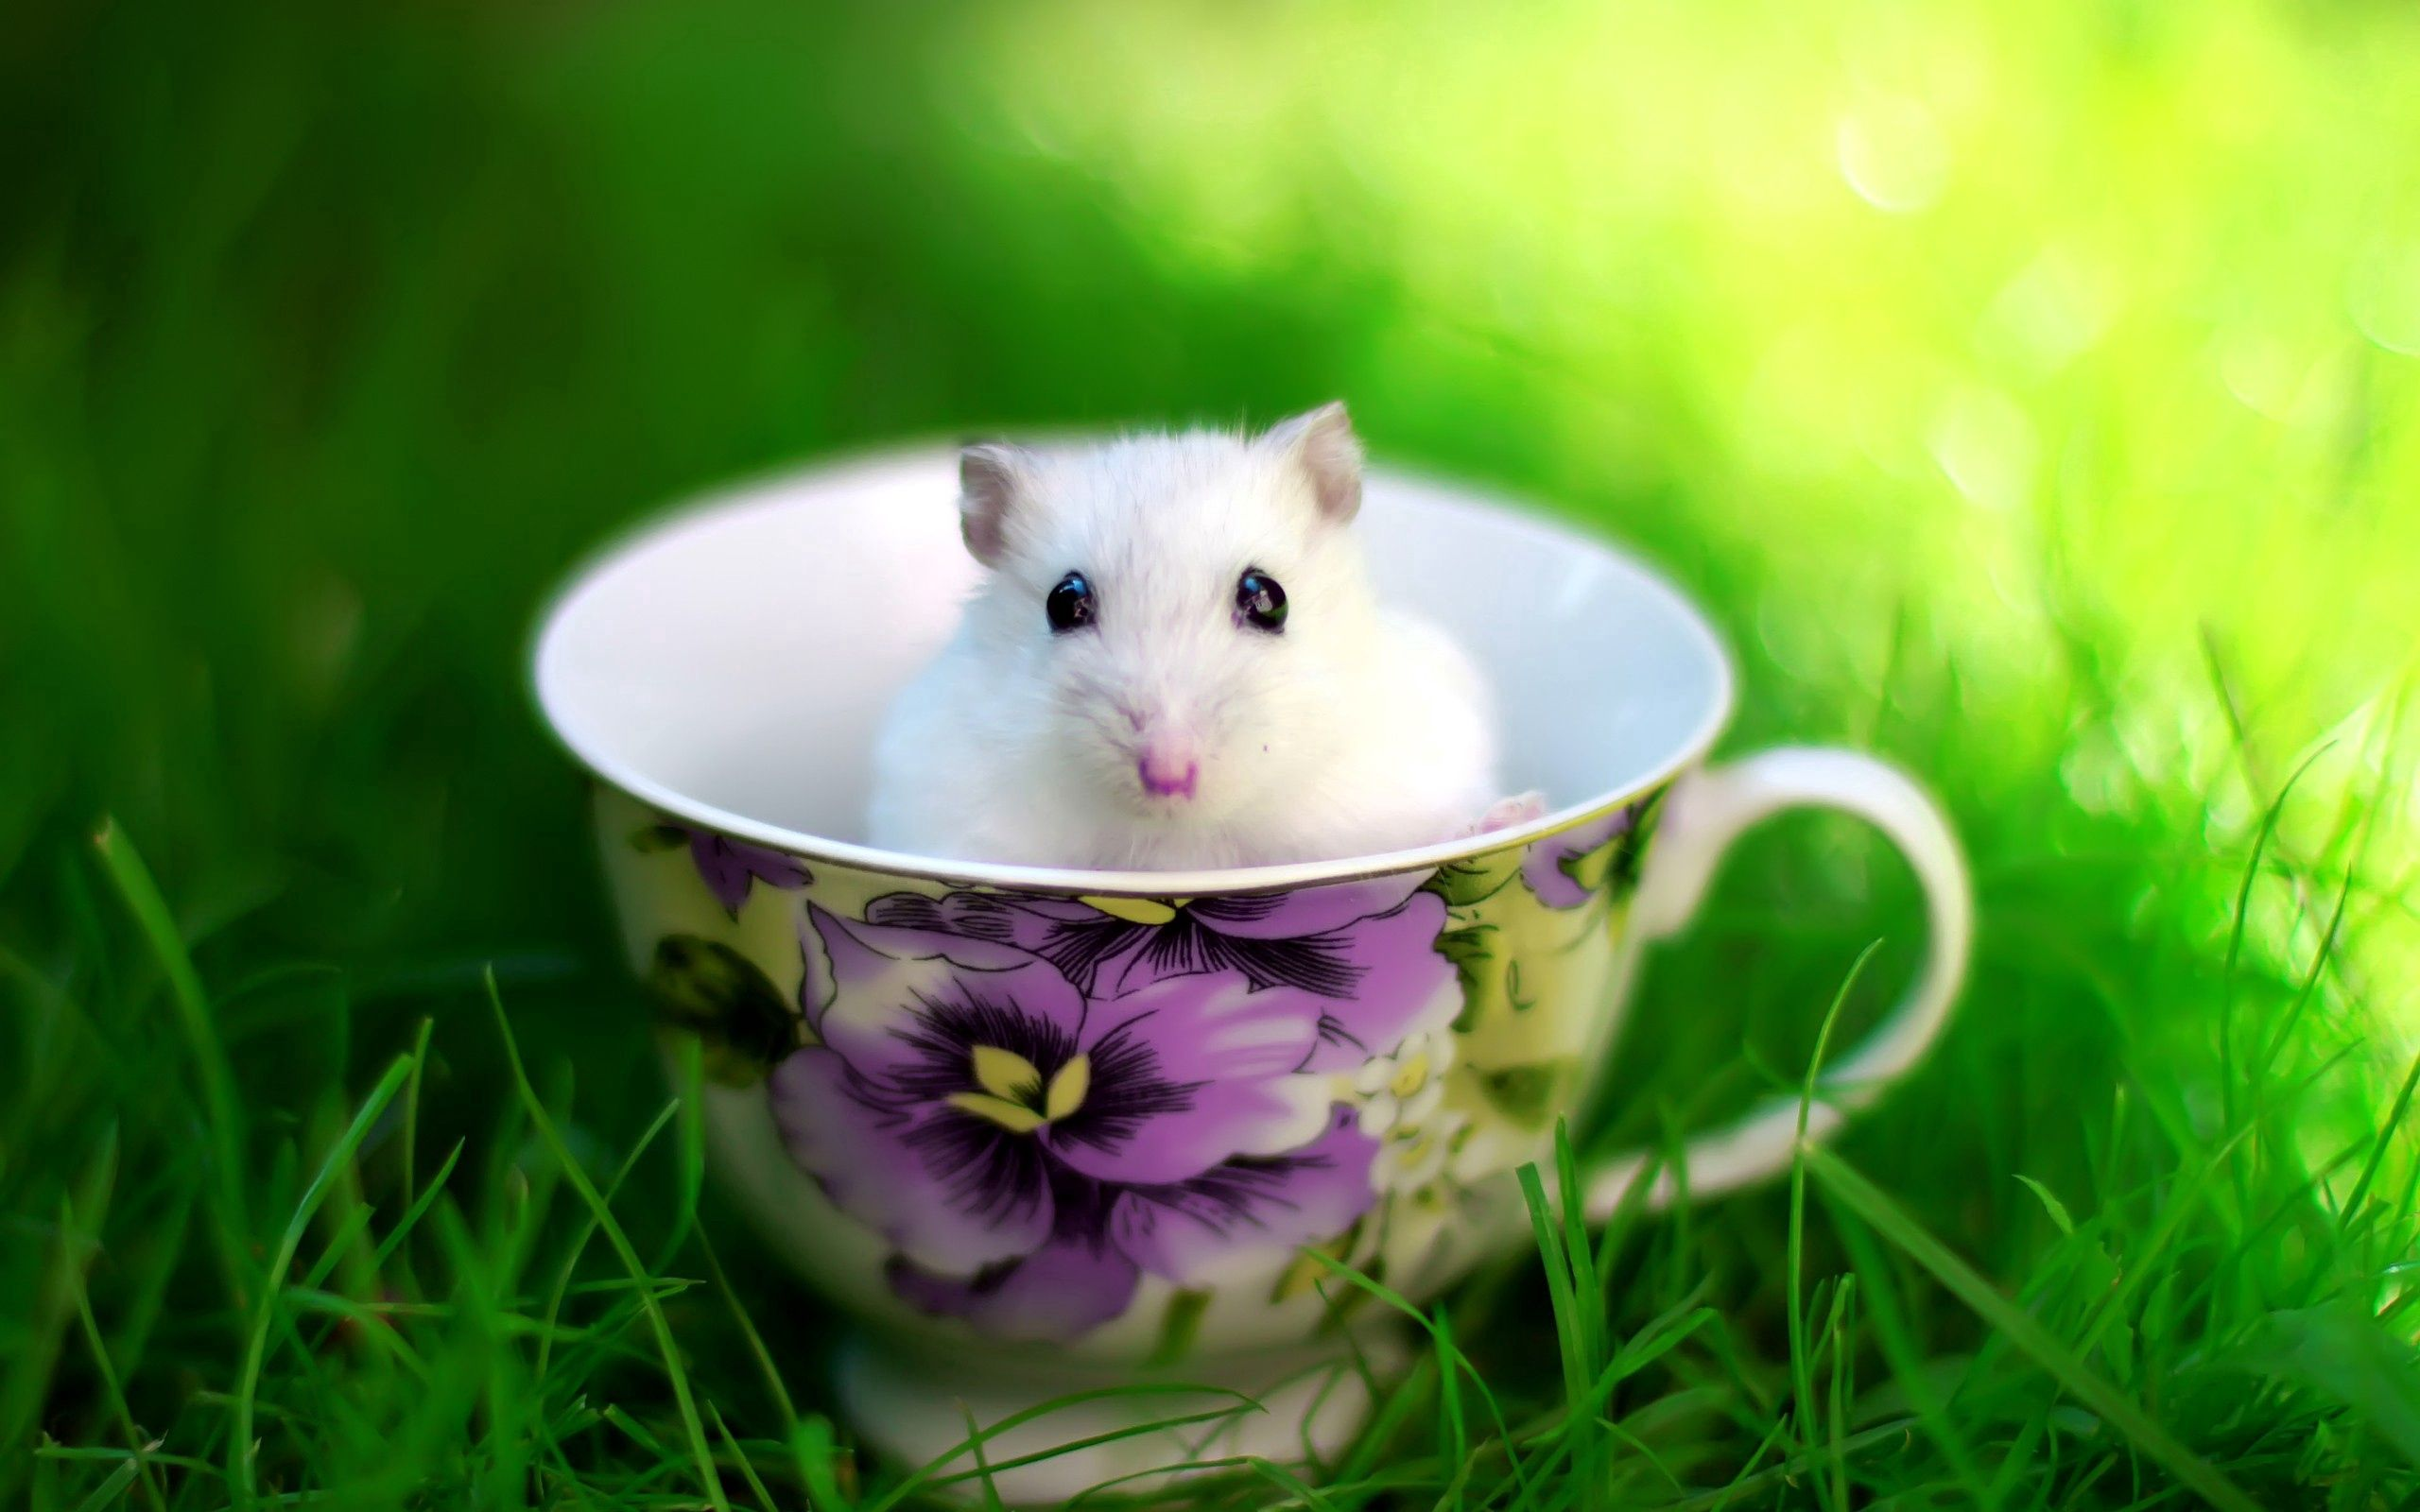 91096 download wallpaper Animals, Hamster, Cup, Rodent, Grass screensavers and pictures for free